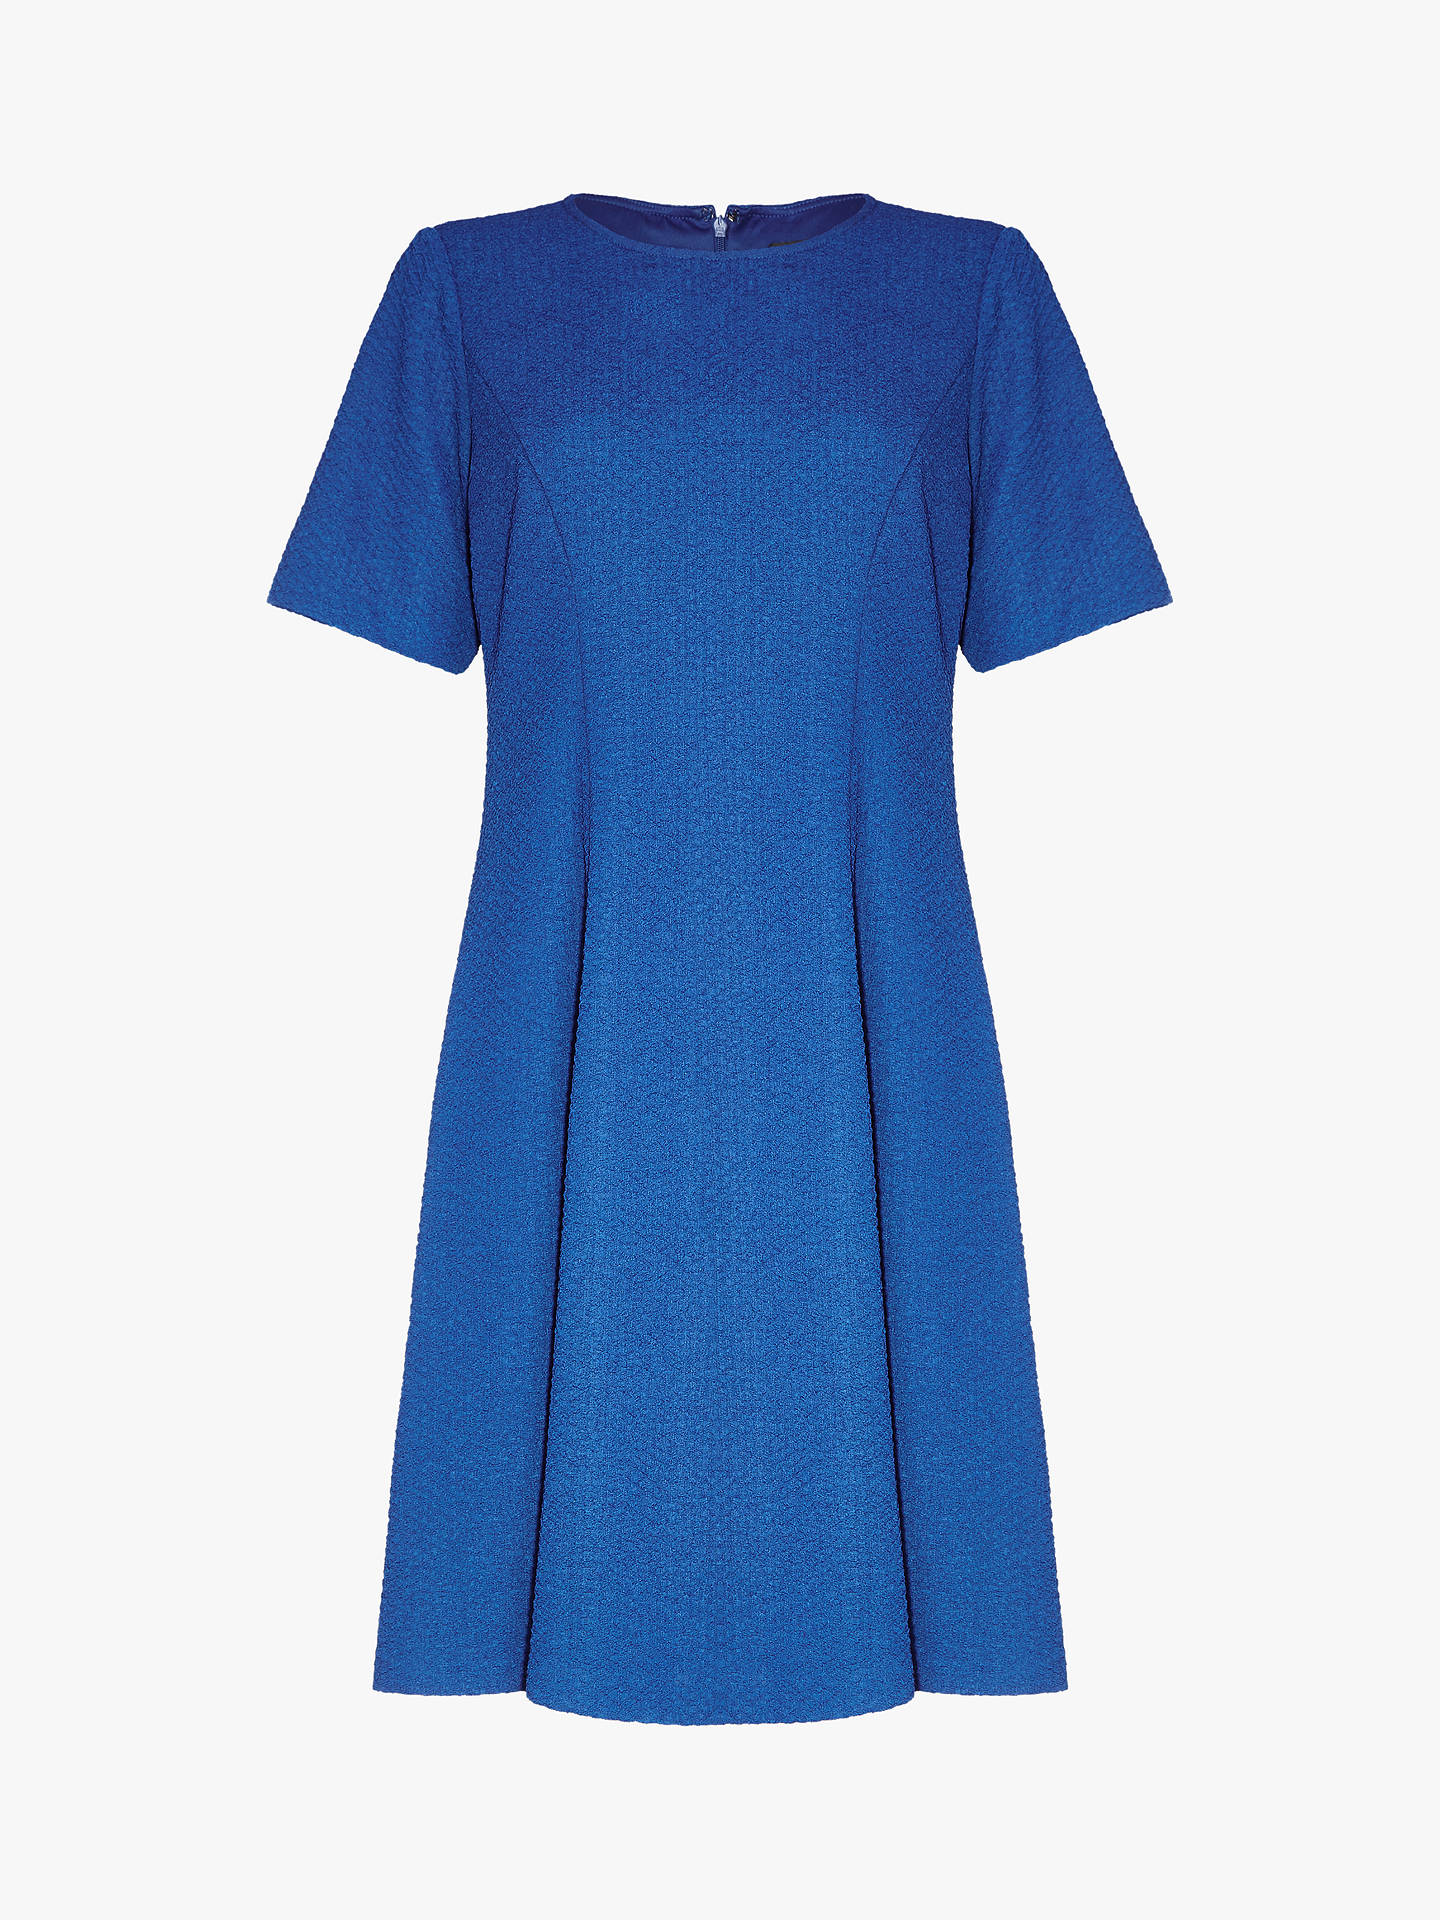 BuyAdrianna Papell Petite Textured Knit Flared Dress, Lapis, XS Online at johnlewis.com